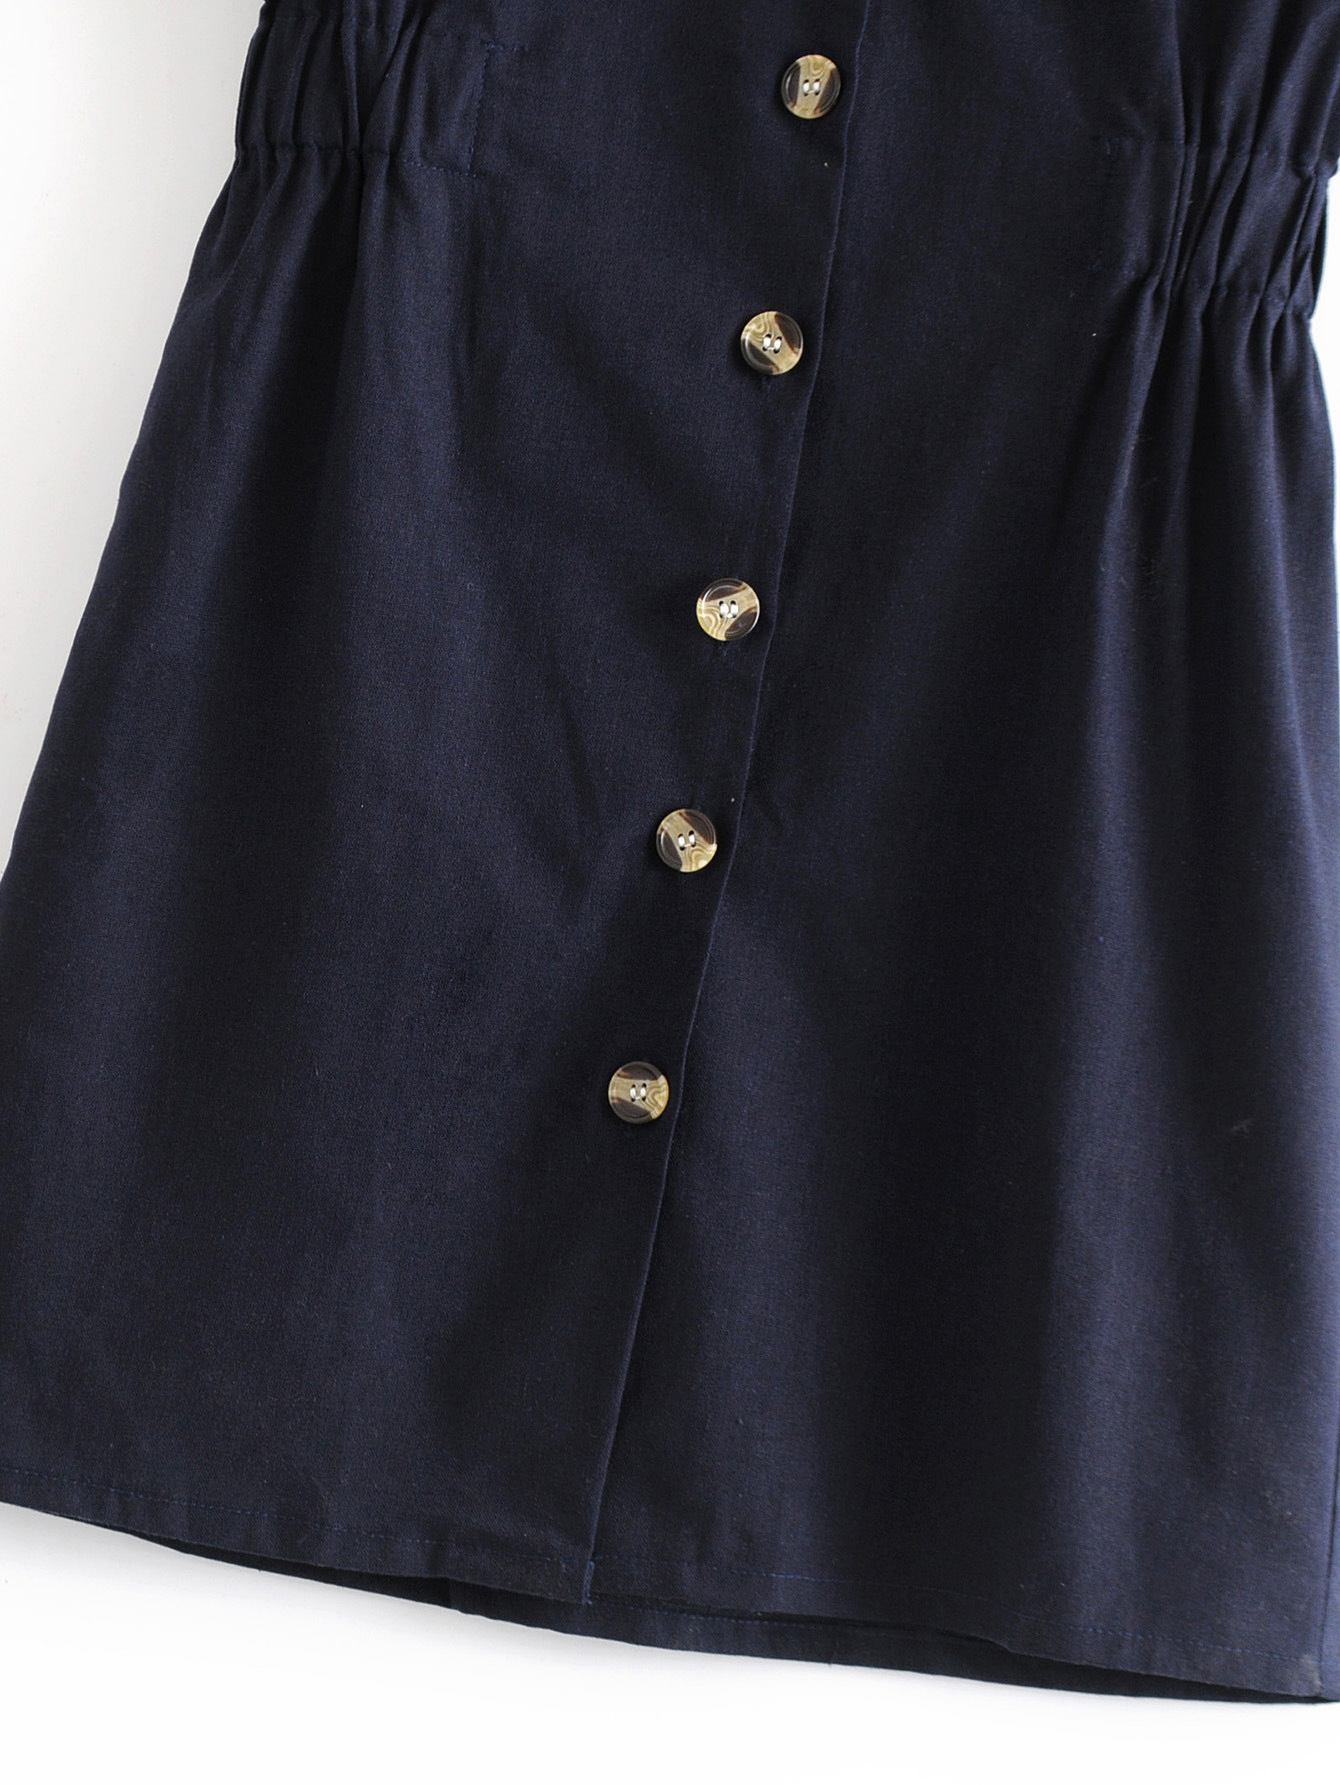 Polyester Fashionskirt(Navy blue-S) NHDS0696-Navy-blue-S